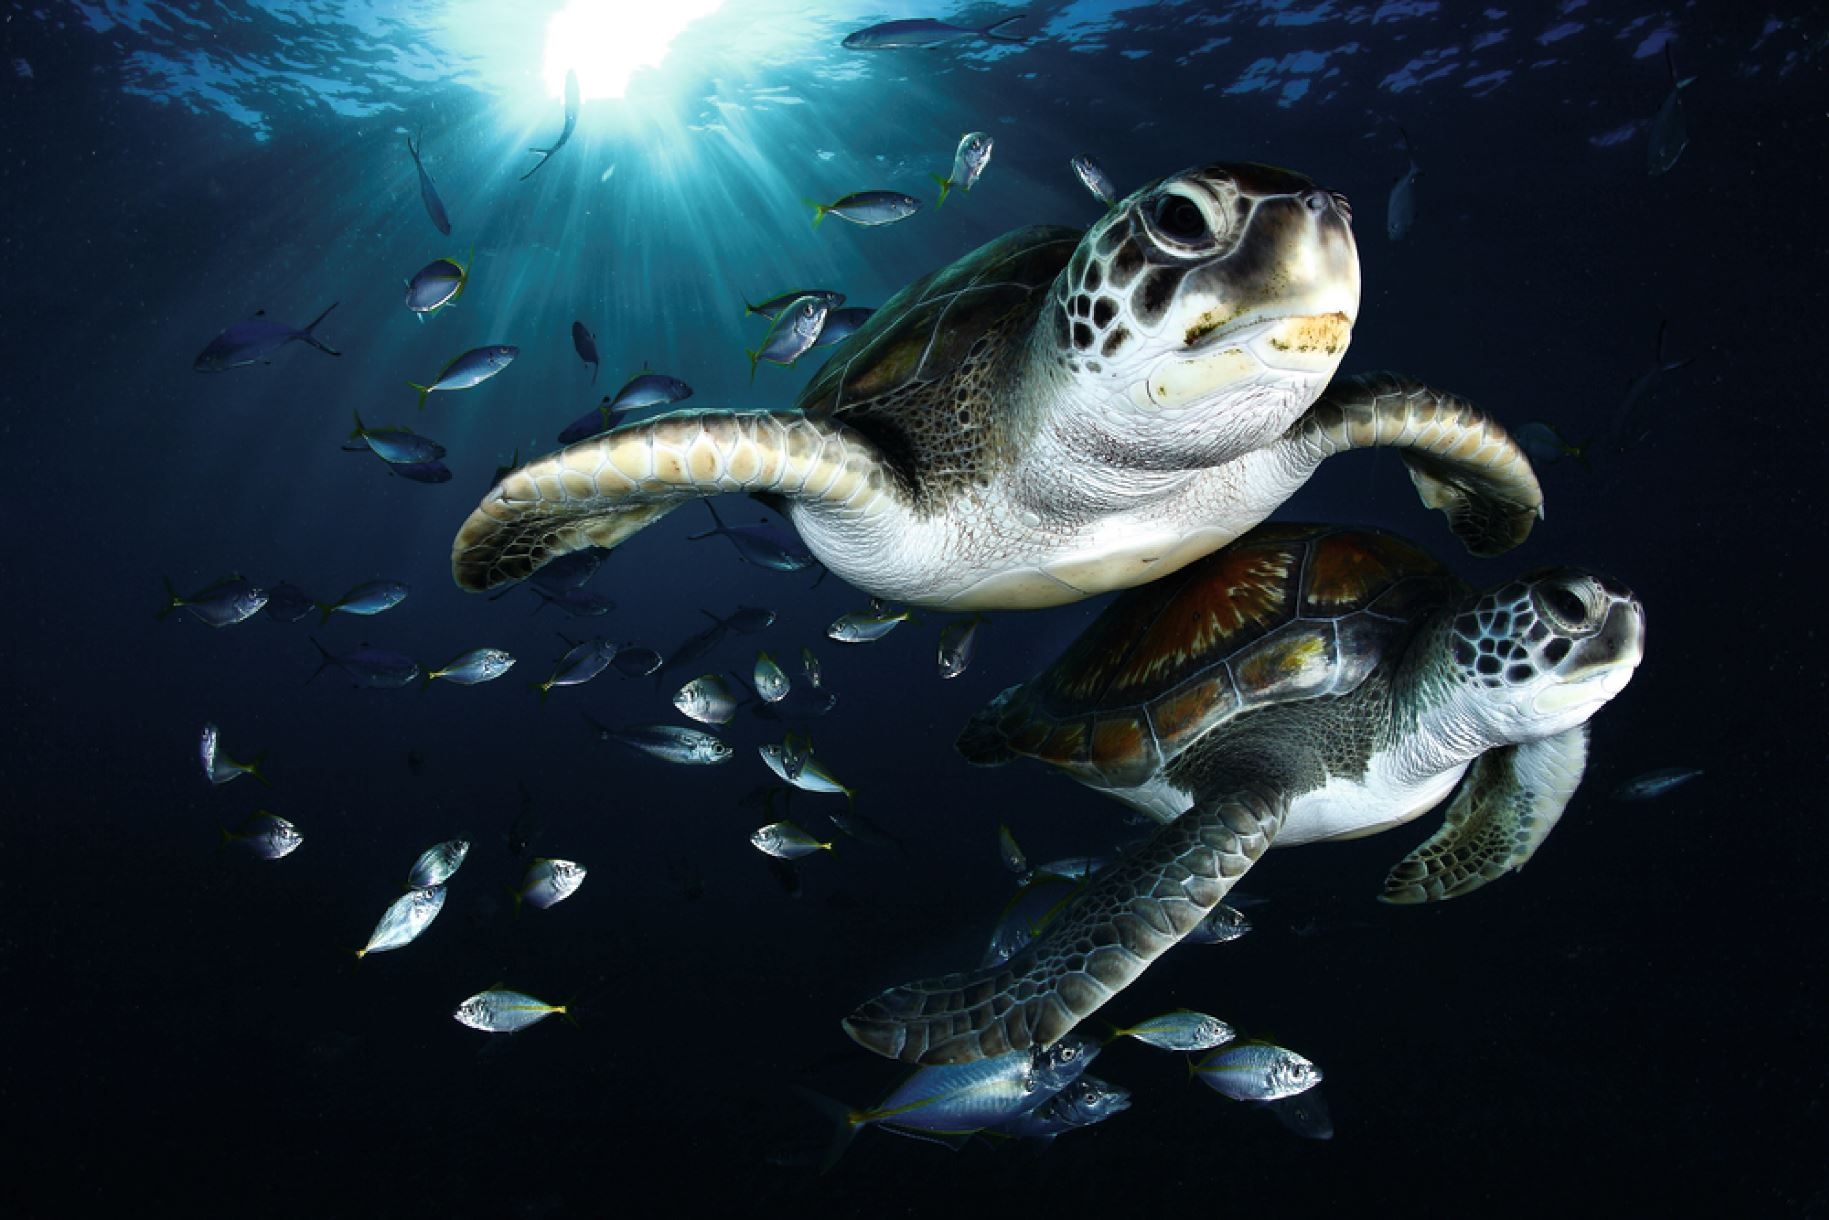 Sea turtles in the Canary Islands